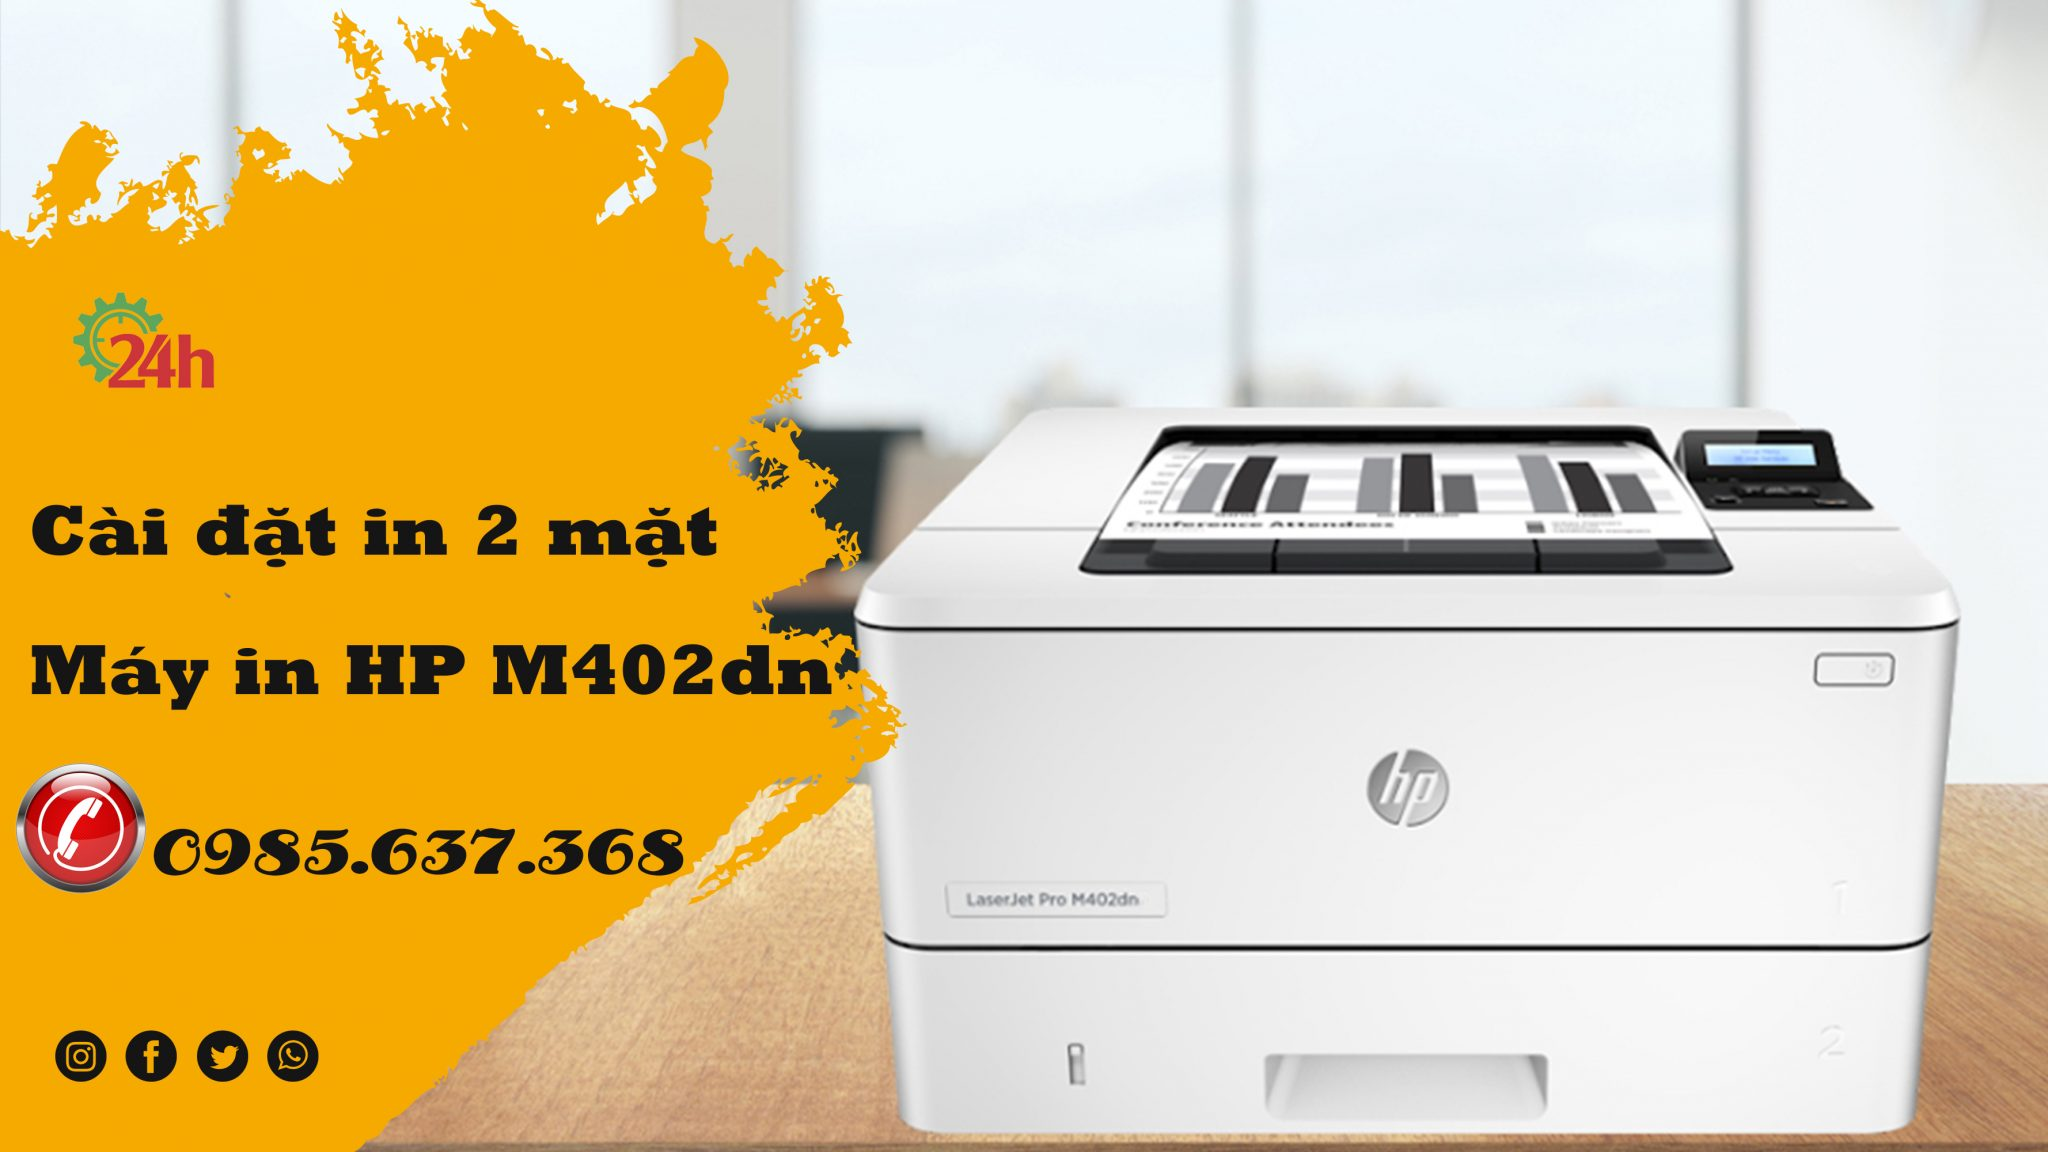 cai-dat-in-2-mat-may-in-hp-m402dn